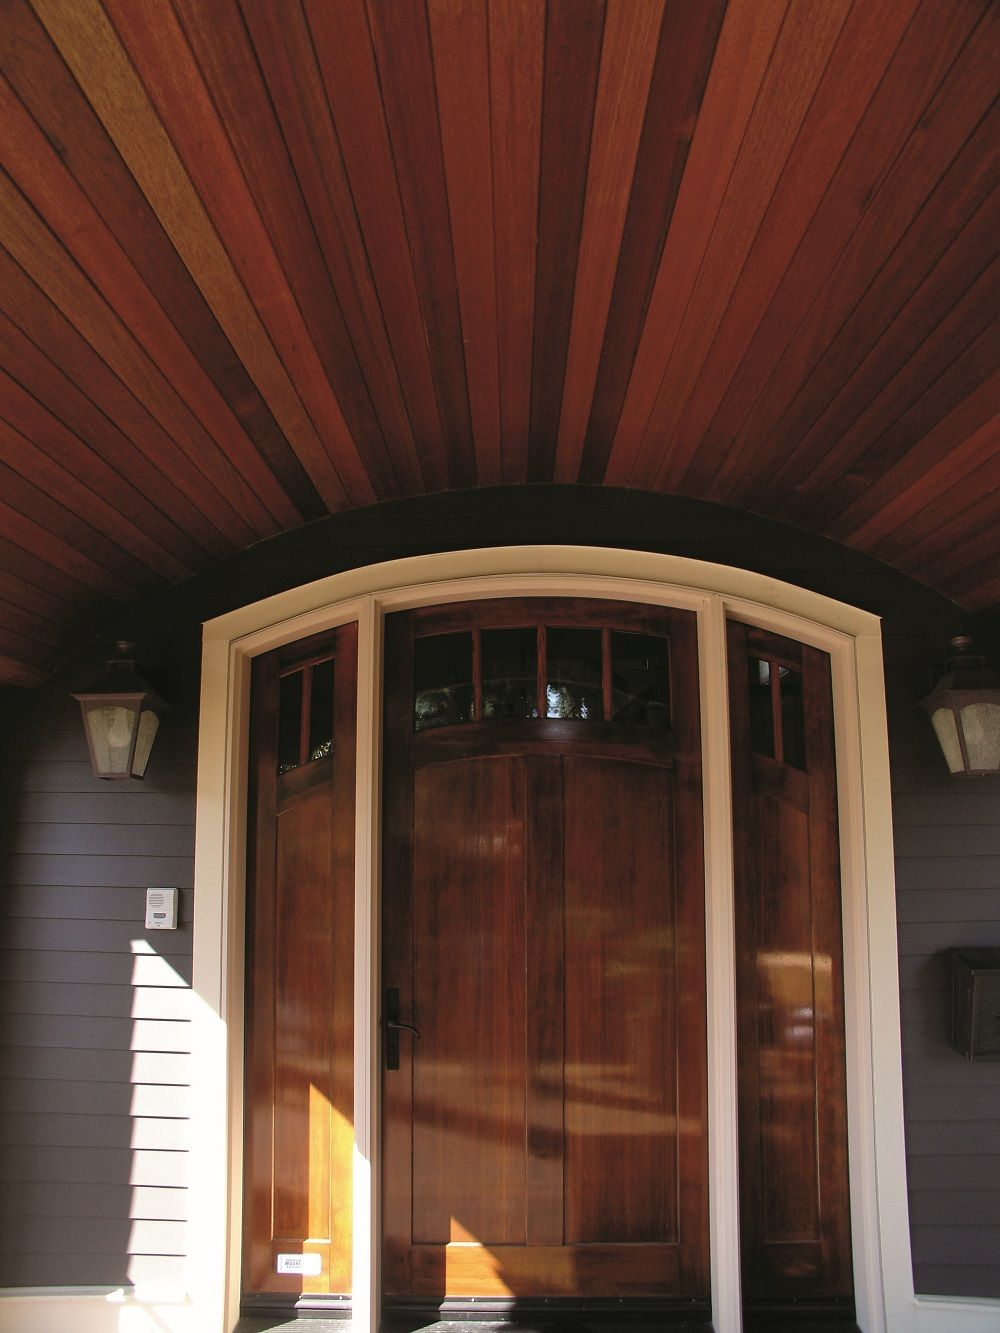 Dark Red Meranti Tongue And Groove Soffit Provides A Beautiful Entrance Wood Supplied By Kayu Canada Inc Wood Supply Wood House Exterior